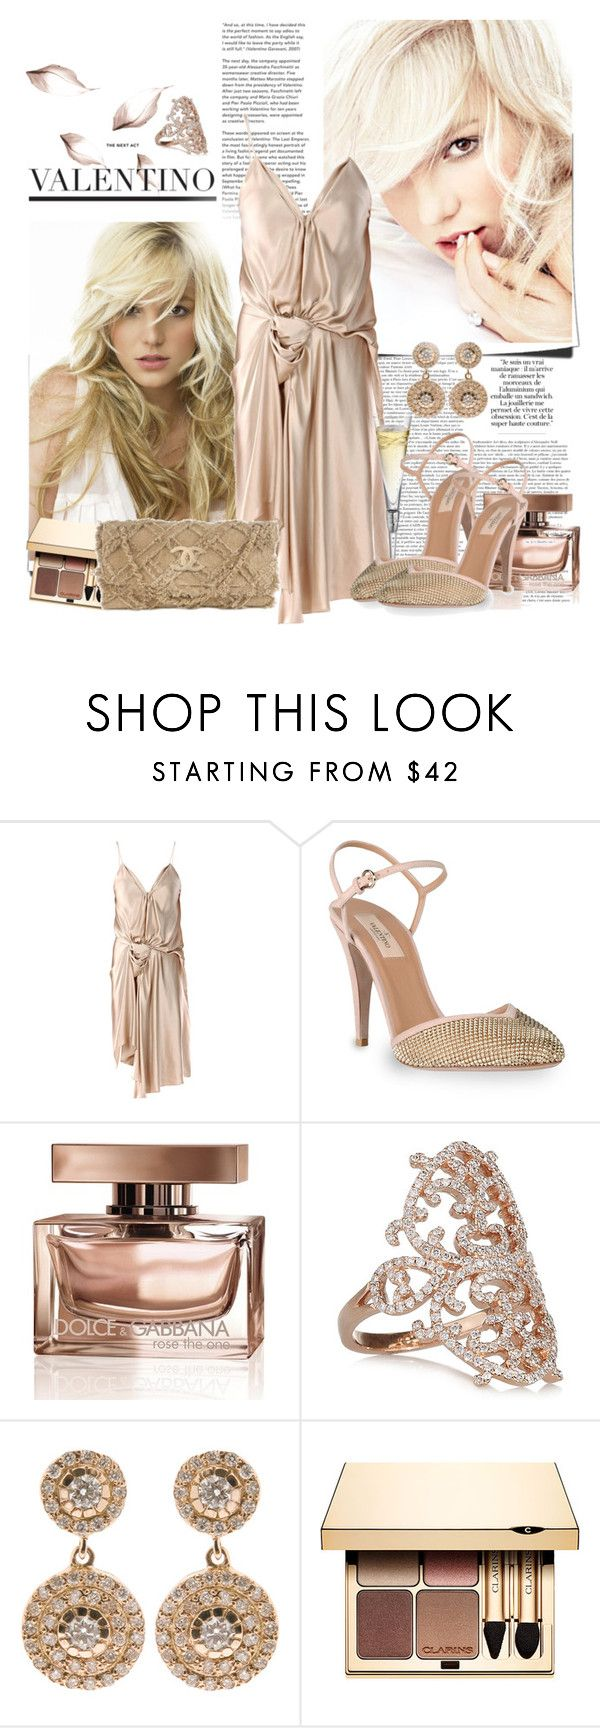 """Britney Spears"" by bklana ❤ liked on Polyvore featuring Britney Spears, Lanvin, Valentino, Dolce&Gabbana, Diane Kordas, Ileana Makri, Clarins, Chanel, nude and lanvin dress"